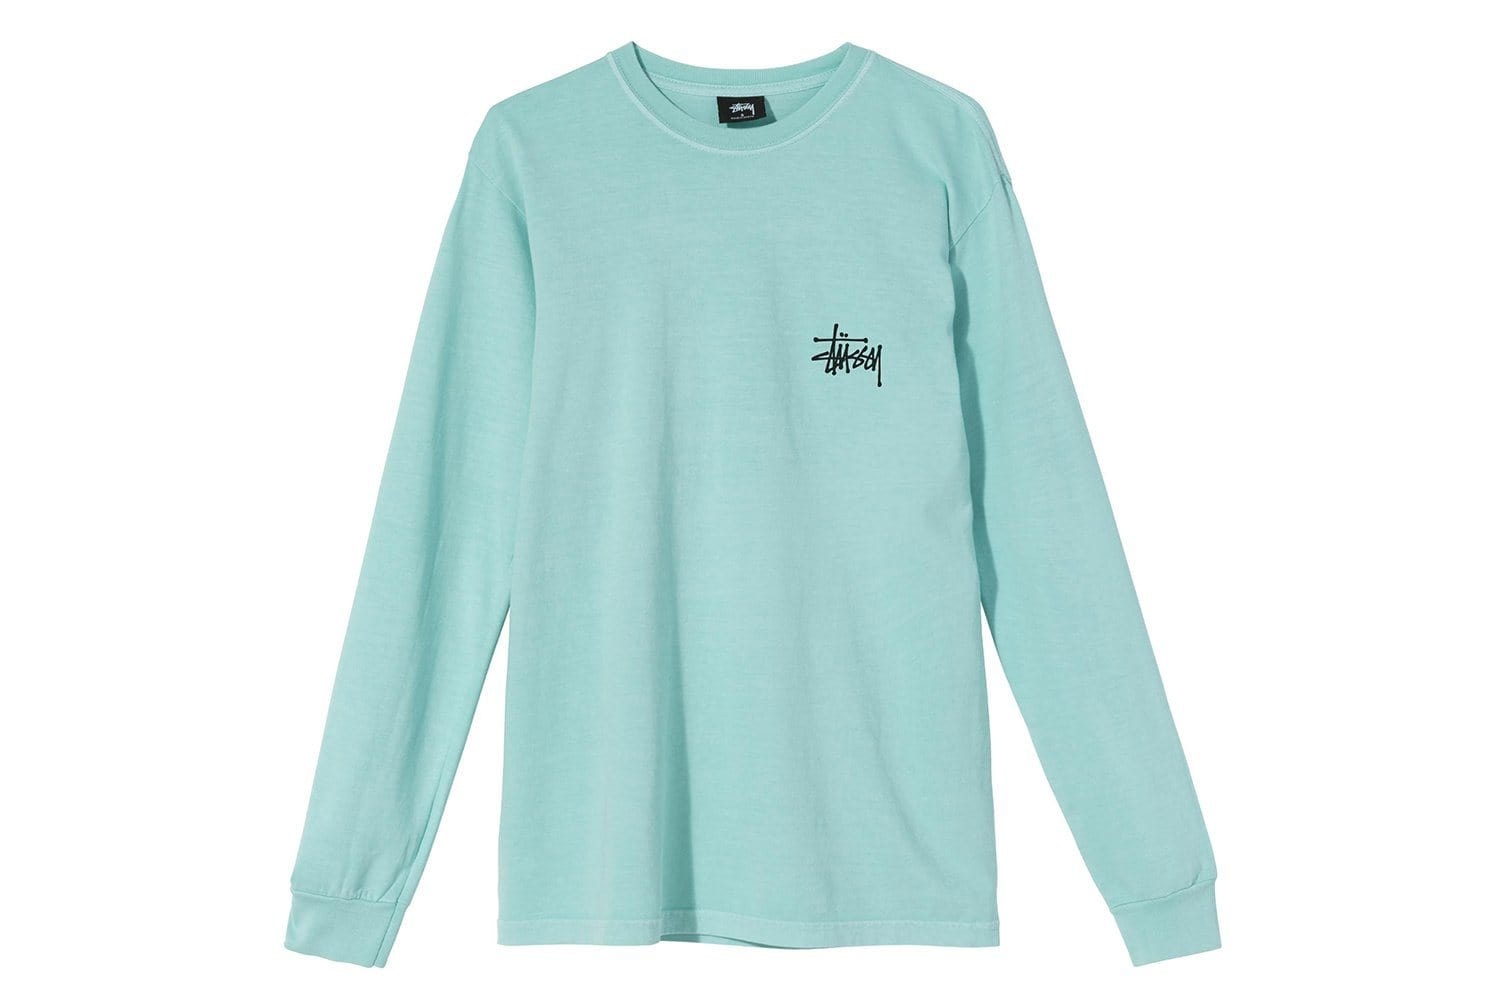 PEACE POT PIG. DYED LS TEE - 2992662 WOMENS SOFTGOODS STUSSY